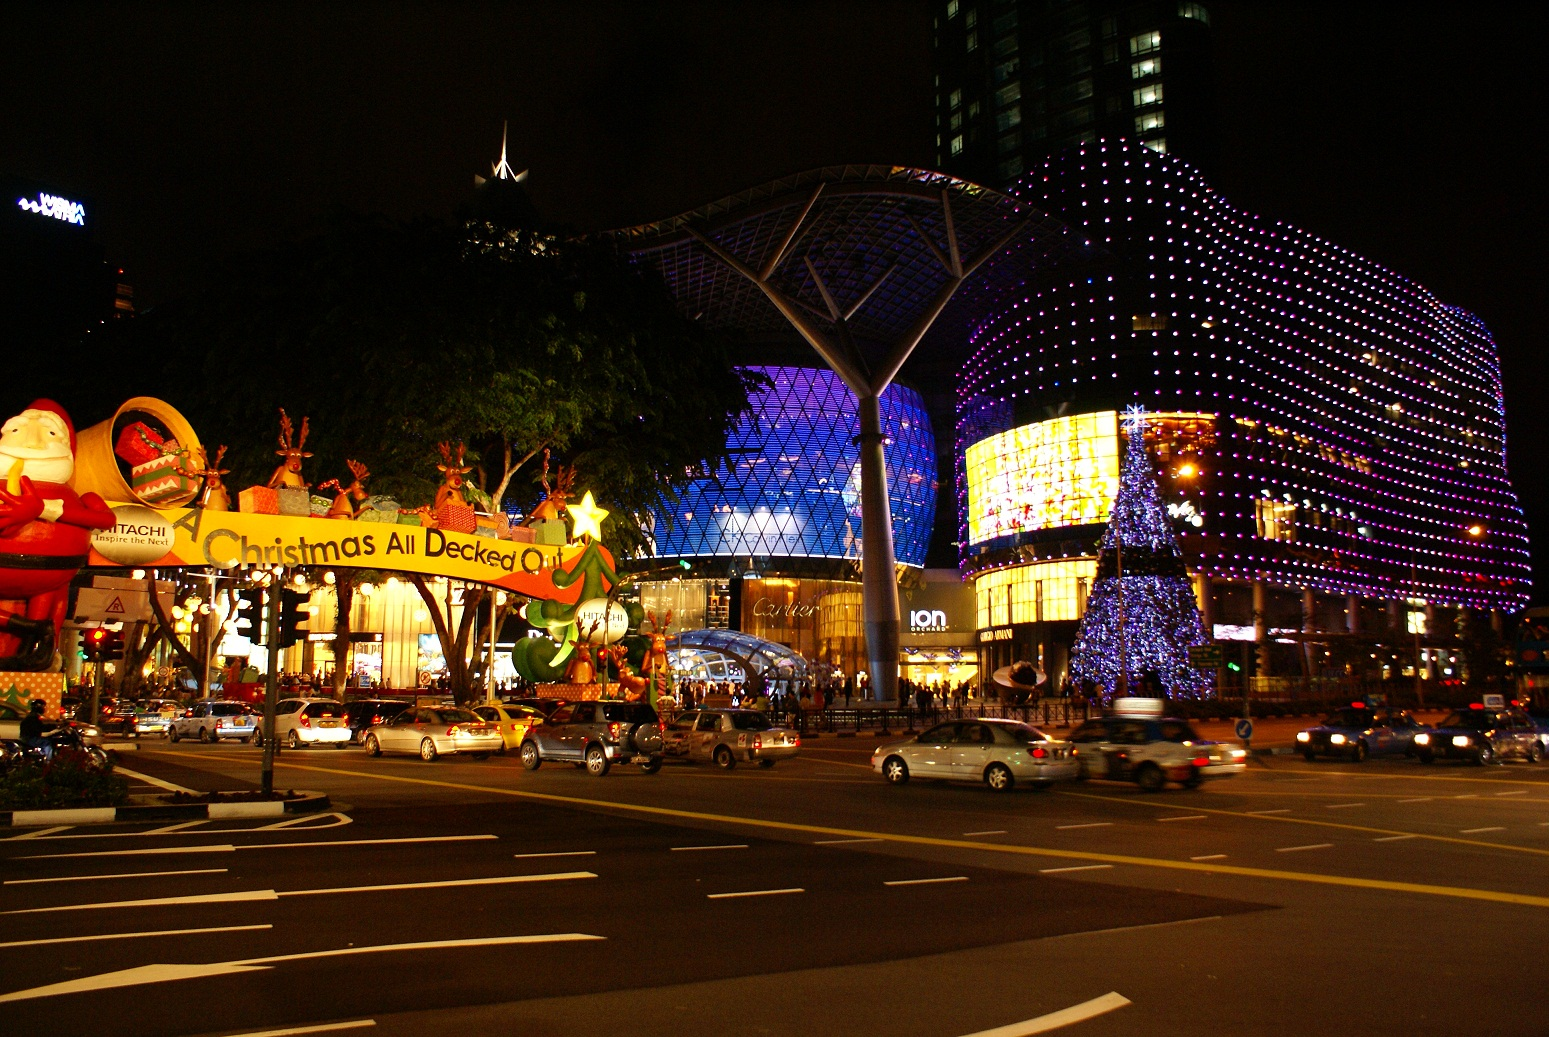 Ion Orchard, above Singapore's Orchard MRT